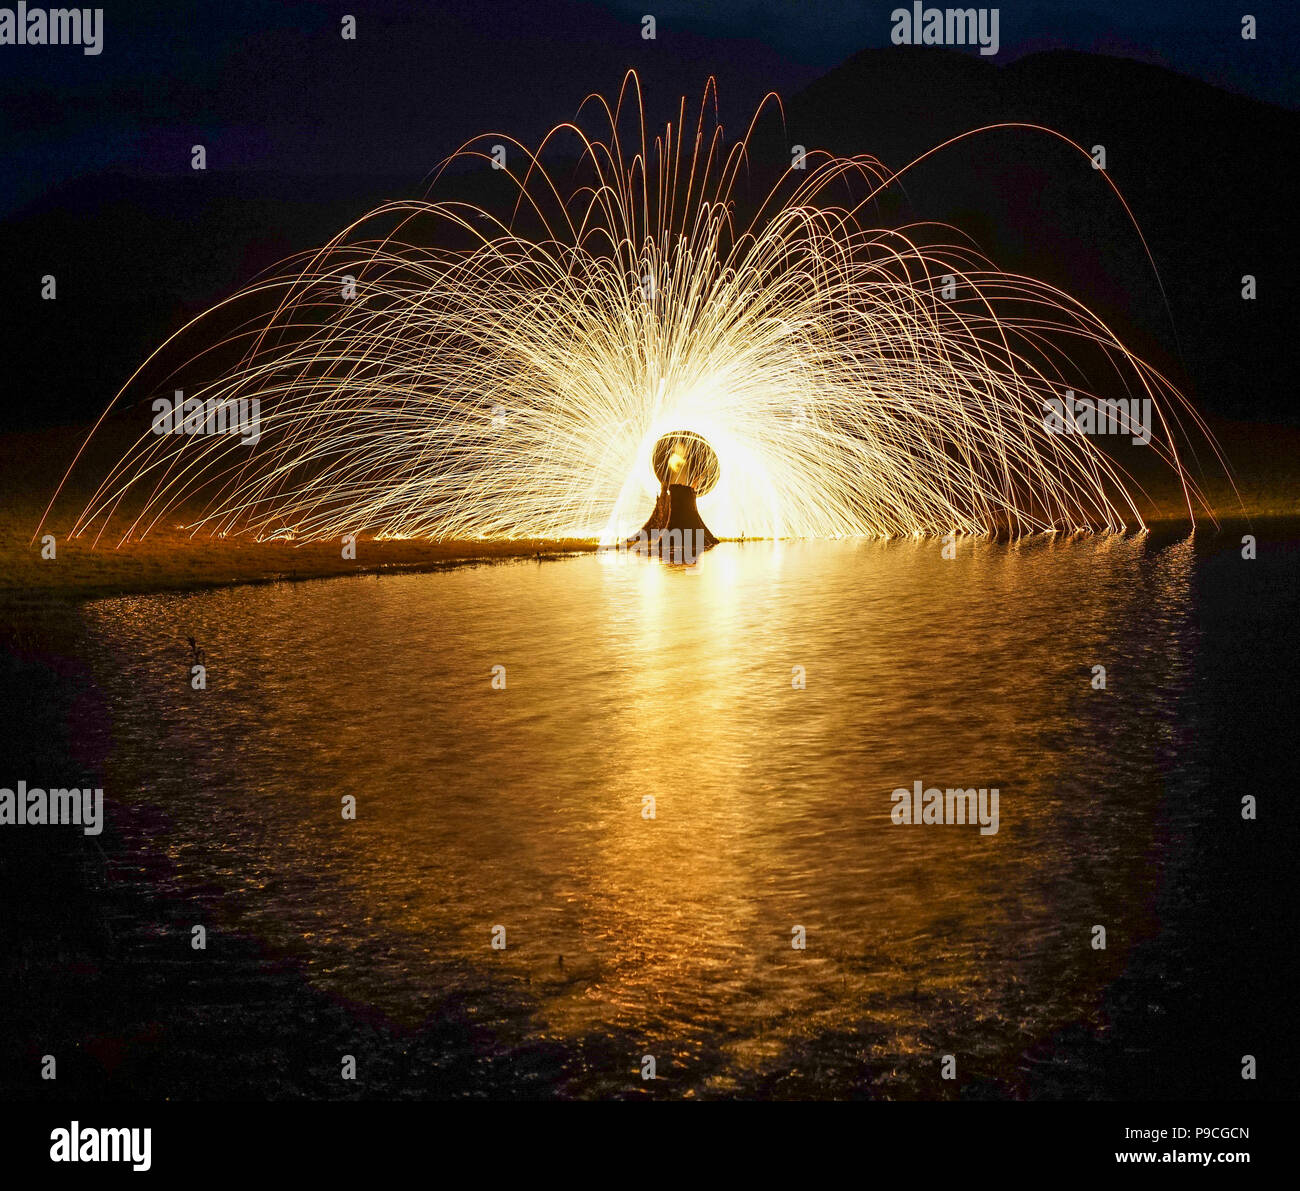 Ring of fire with long exposure at night. Light background. Stock Photo